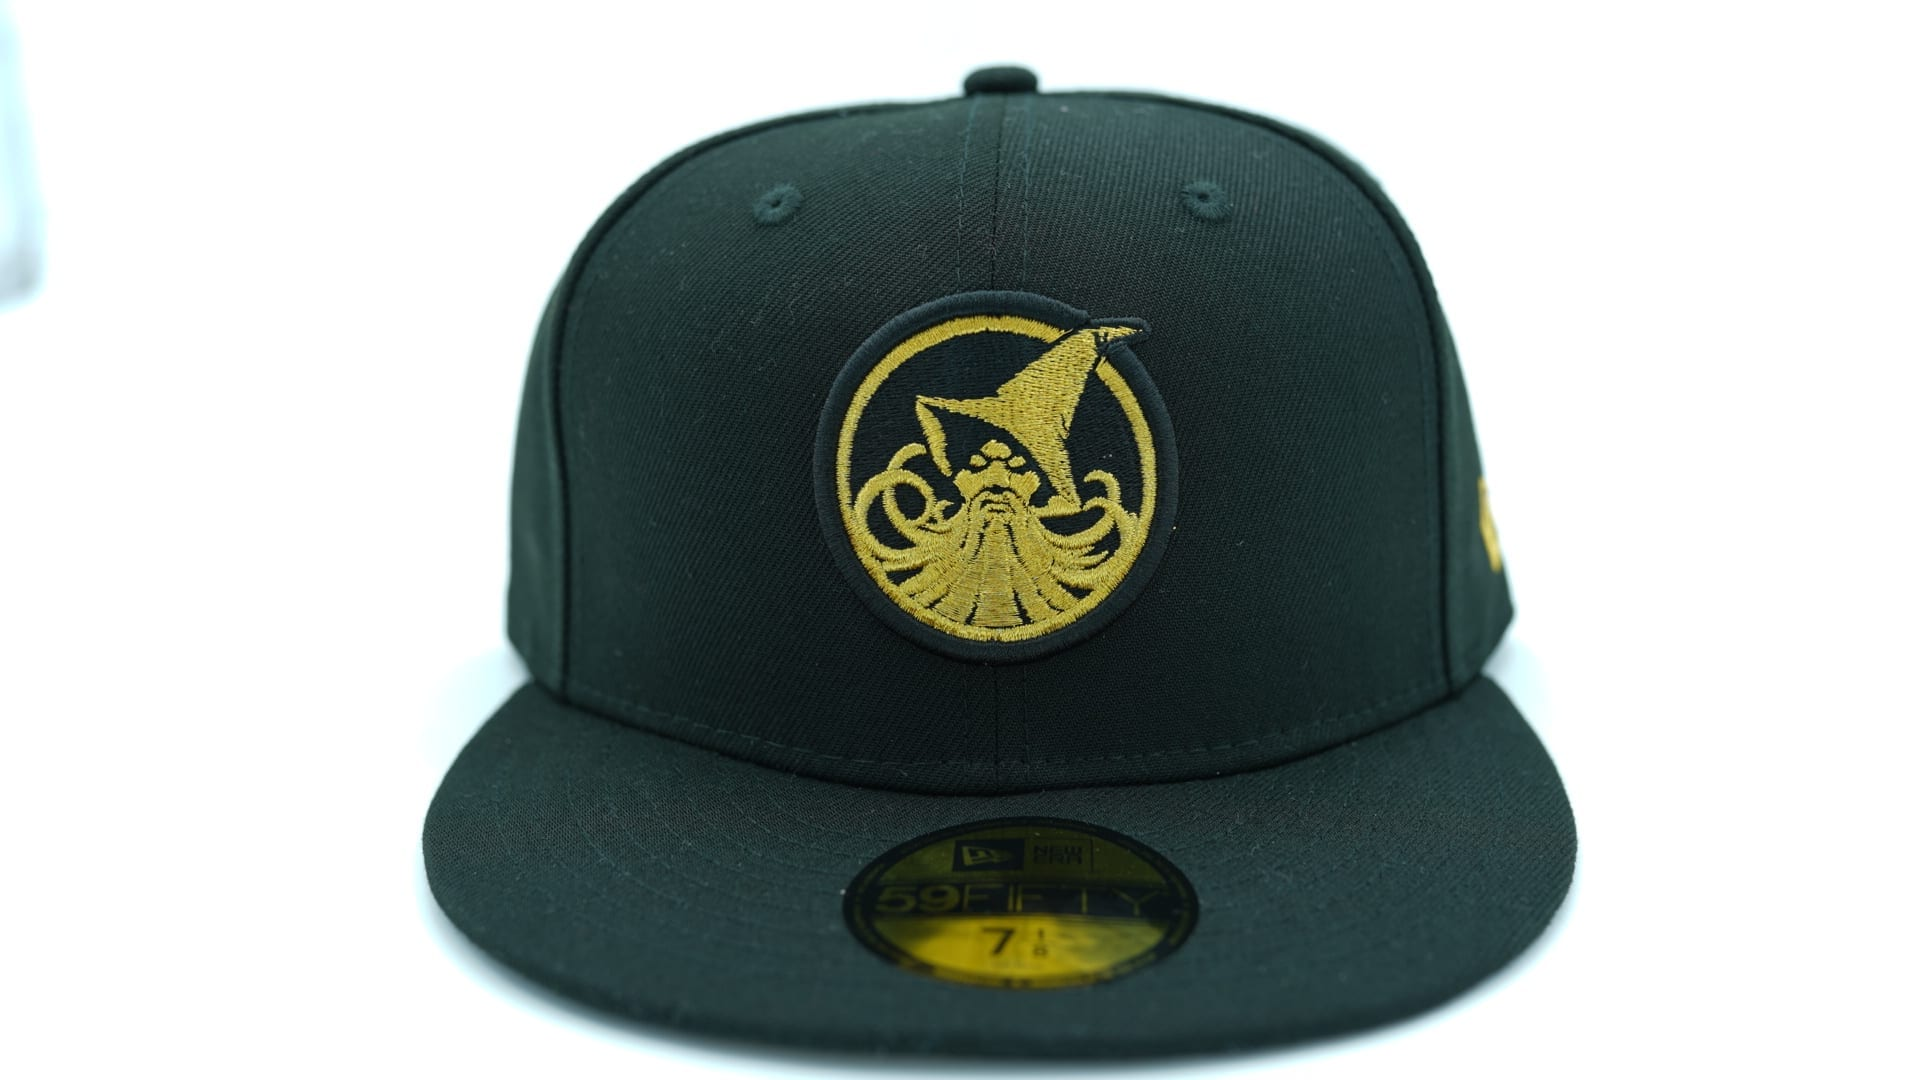 cc4514bbb9a New Fitteds   HAT CLUB  NEW ERA「Filipino Flag」59Fifty Caps ...